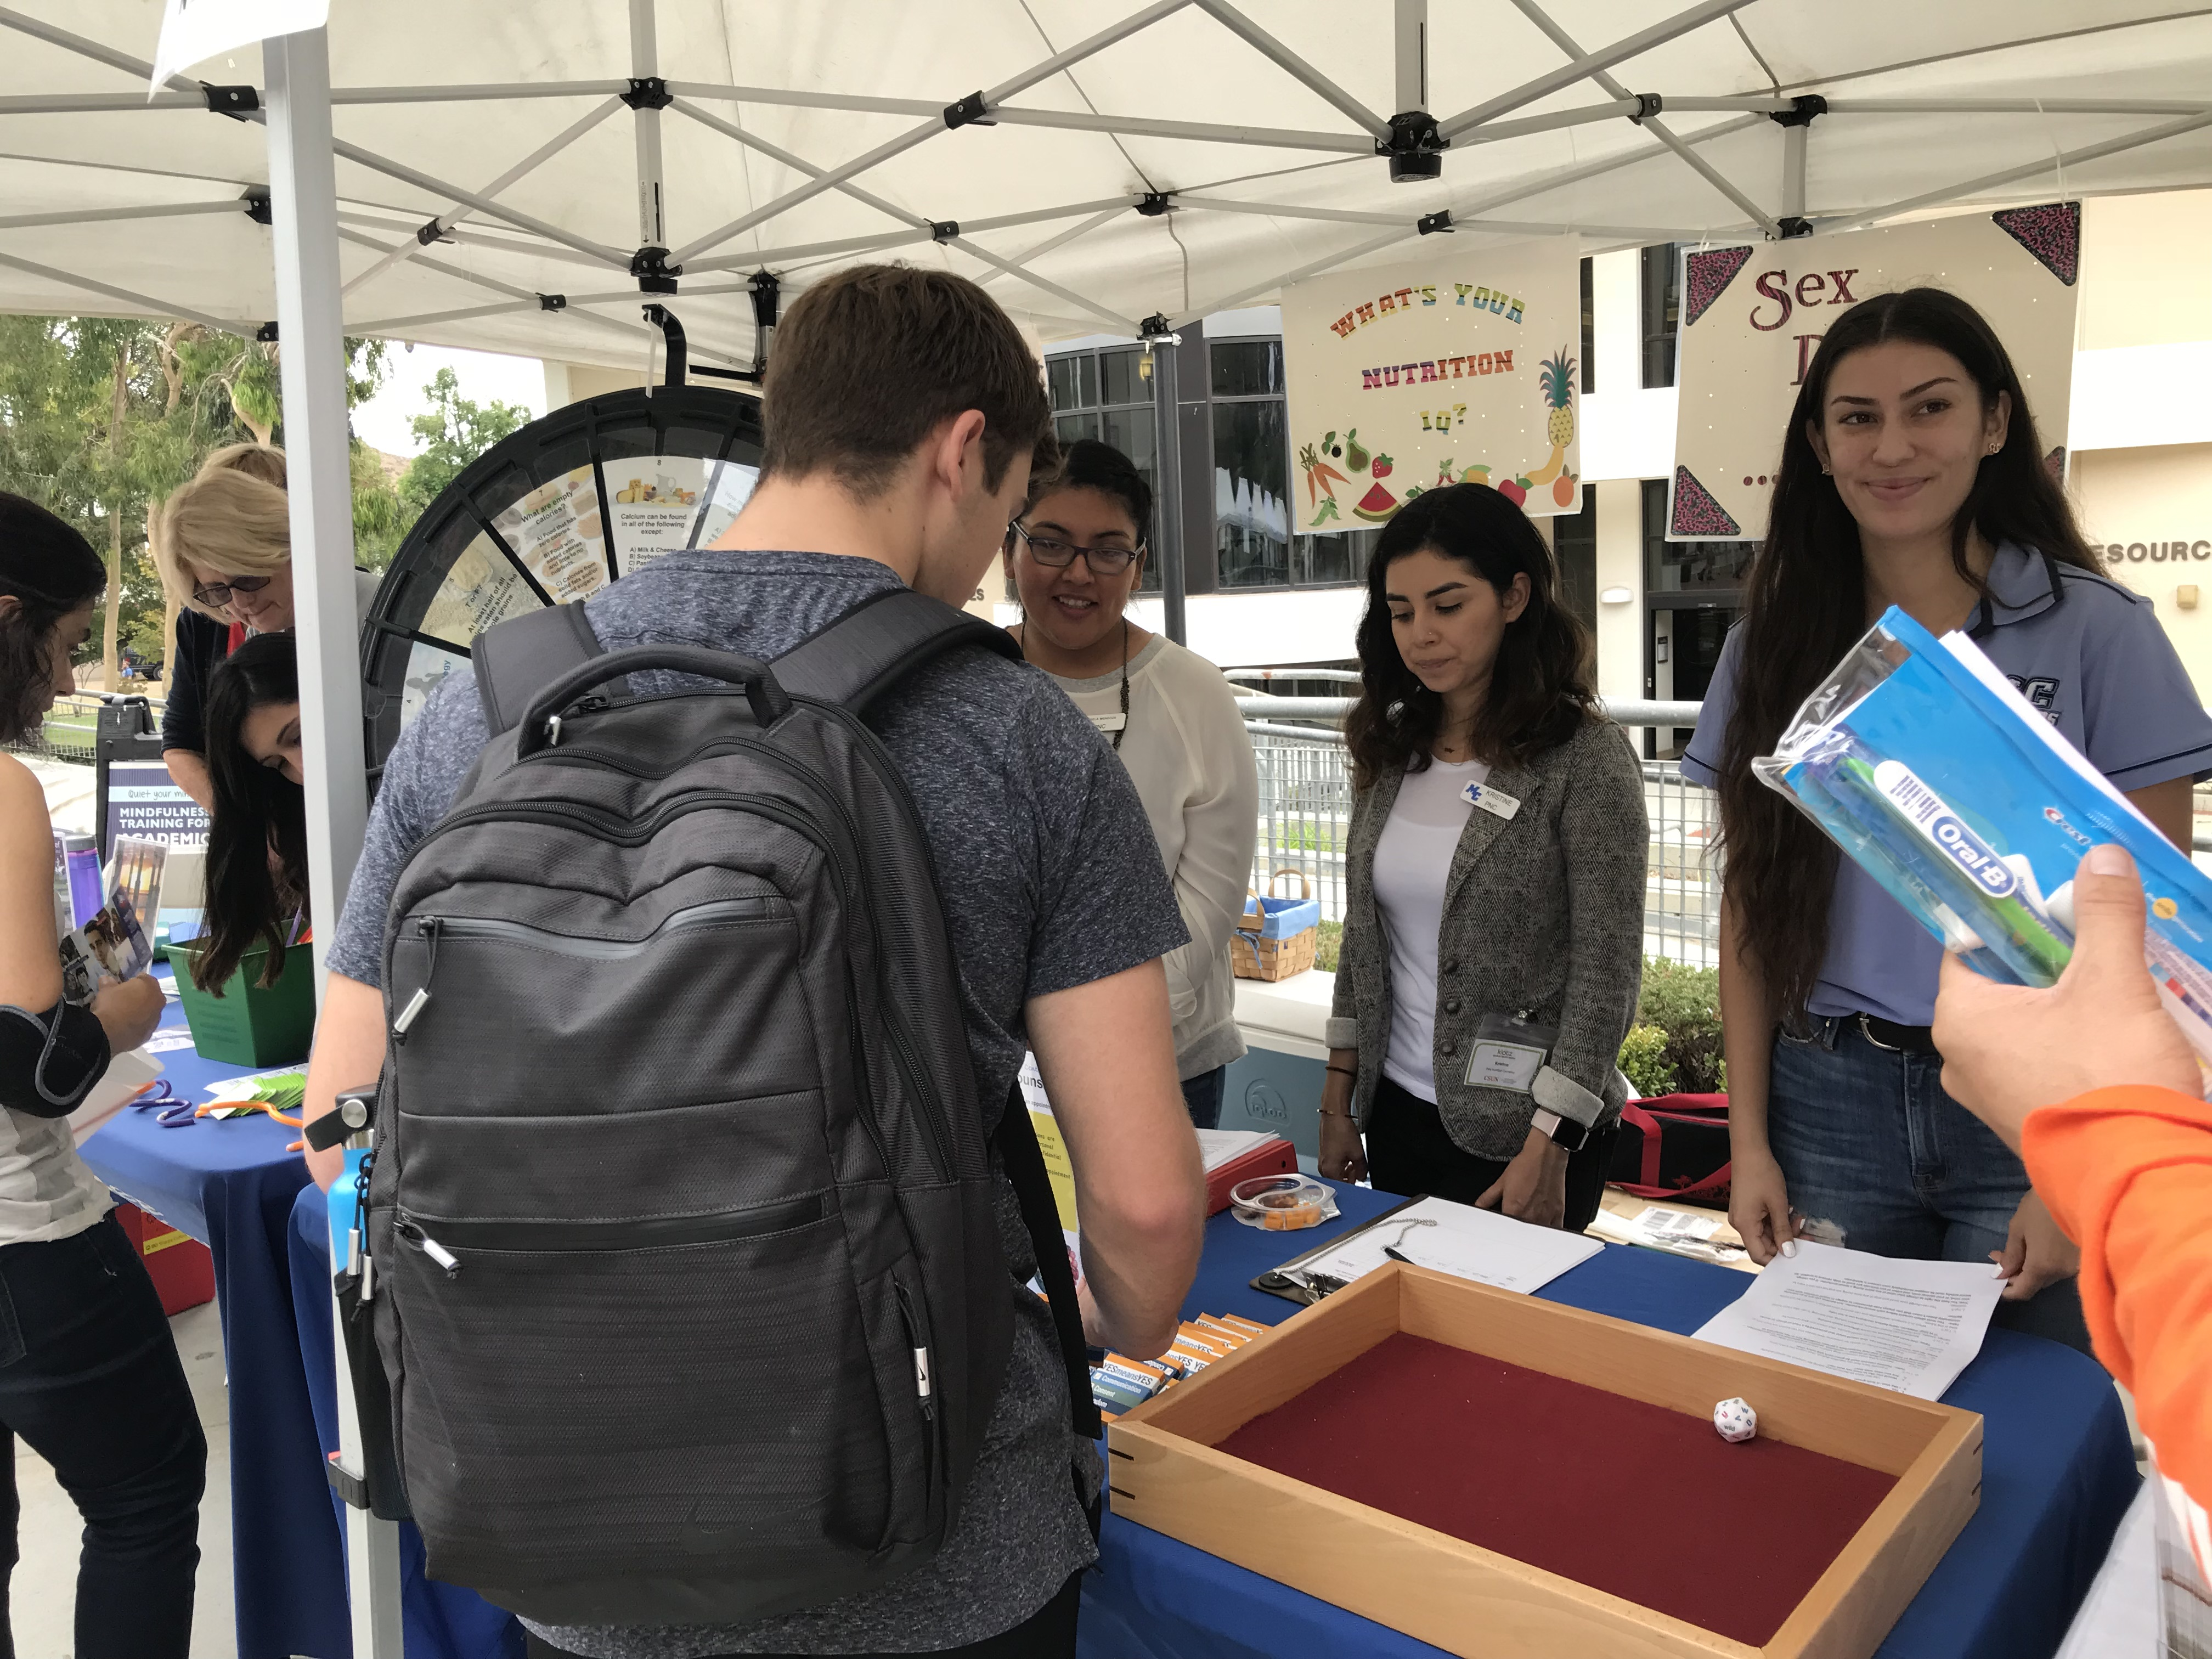 Moorpark College Students Play Health Education Games at the Health Fair